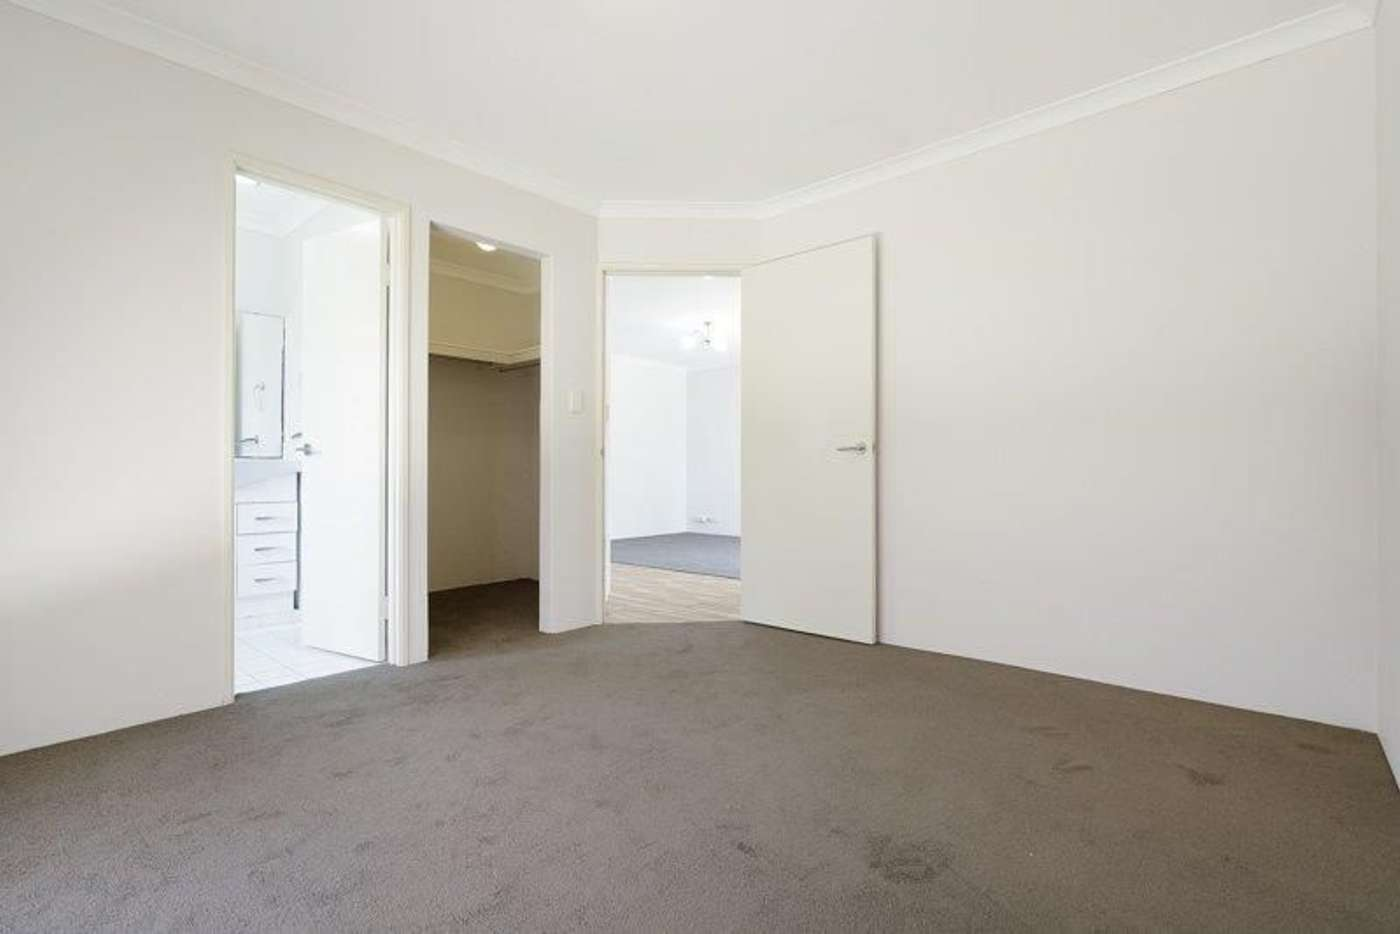 Seventh view of Homely house listing, 1/63 Saw Avenue, Rockingham WA 6168